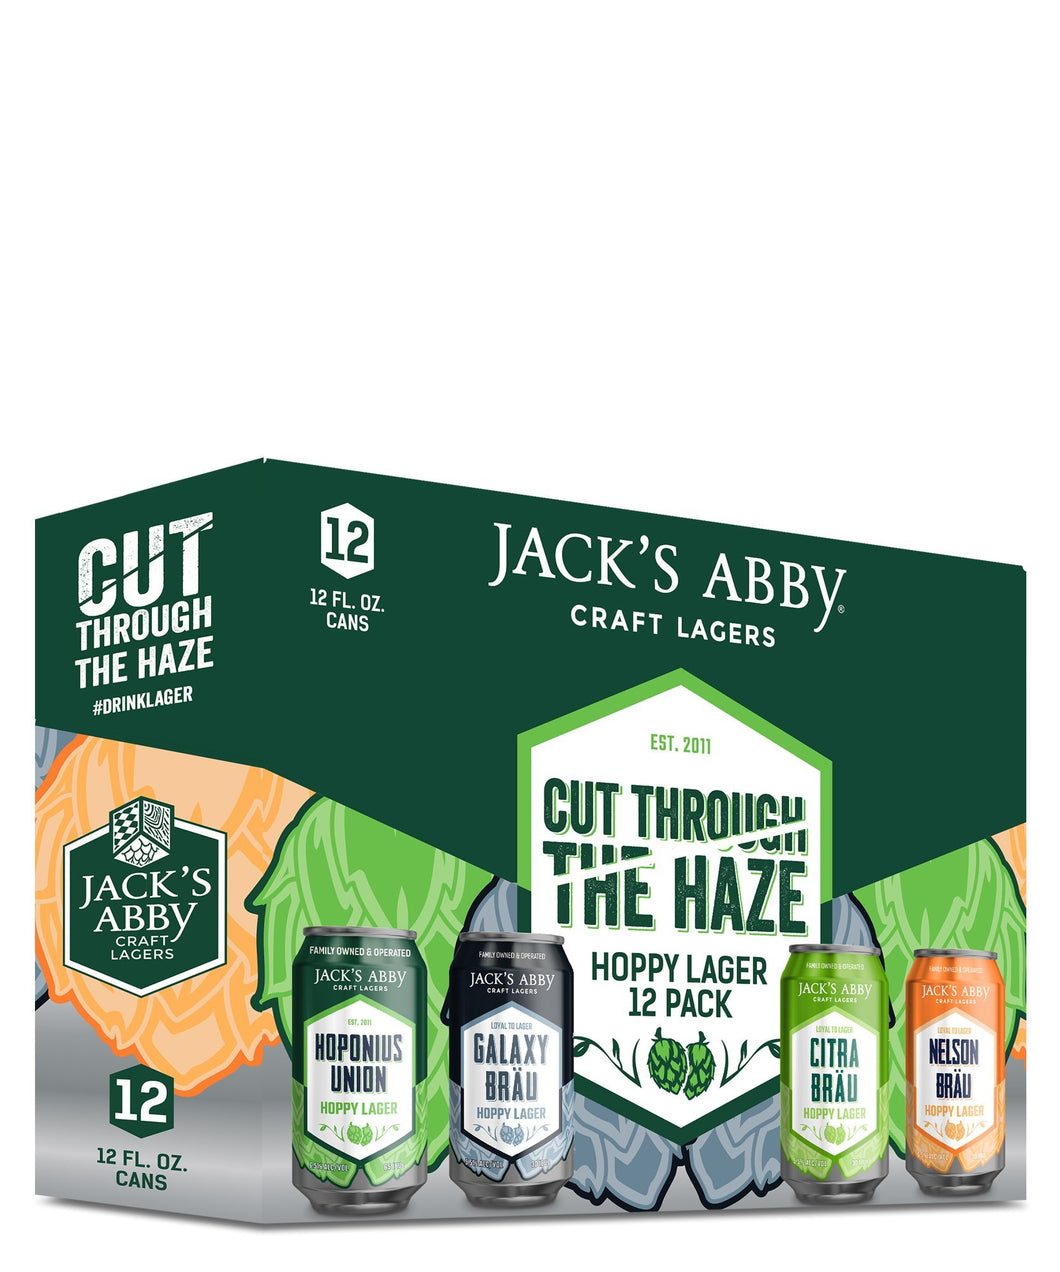 Cut Through the Haze - Jacks Abby Craft Lagers Delivered By TapRm